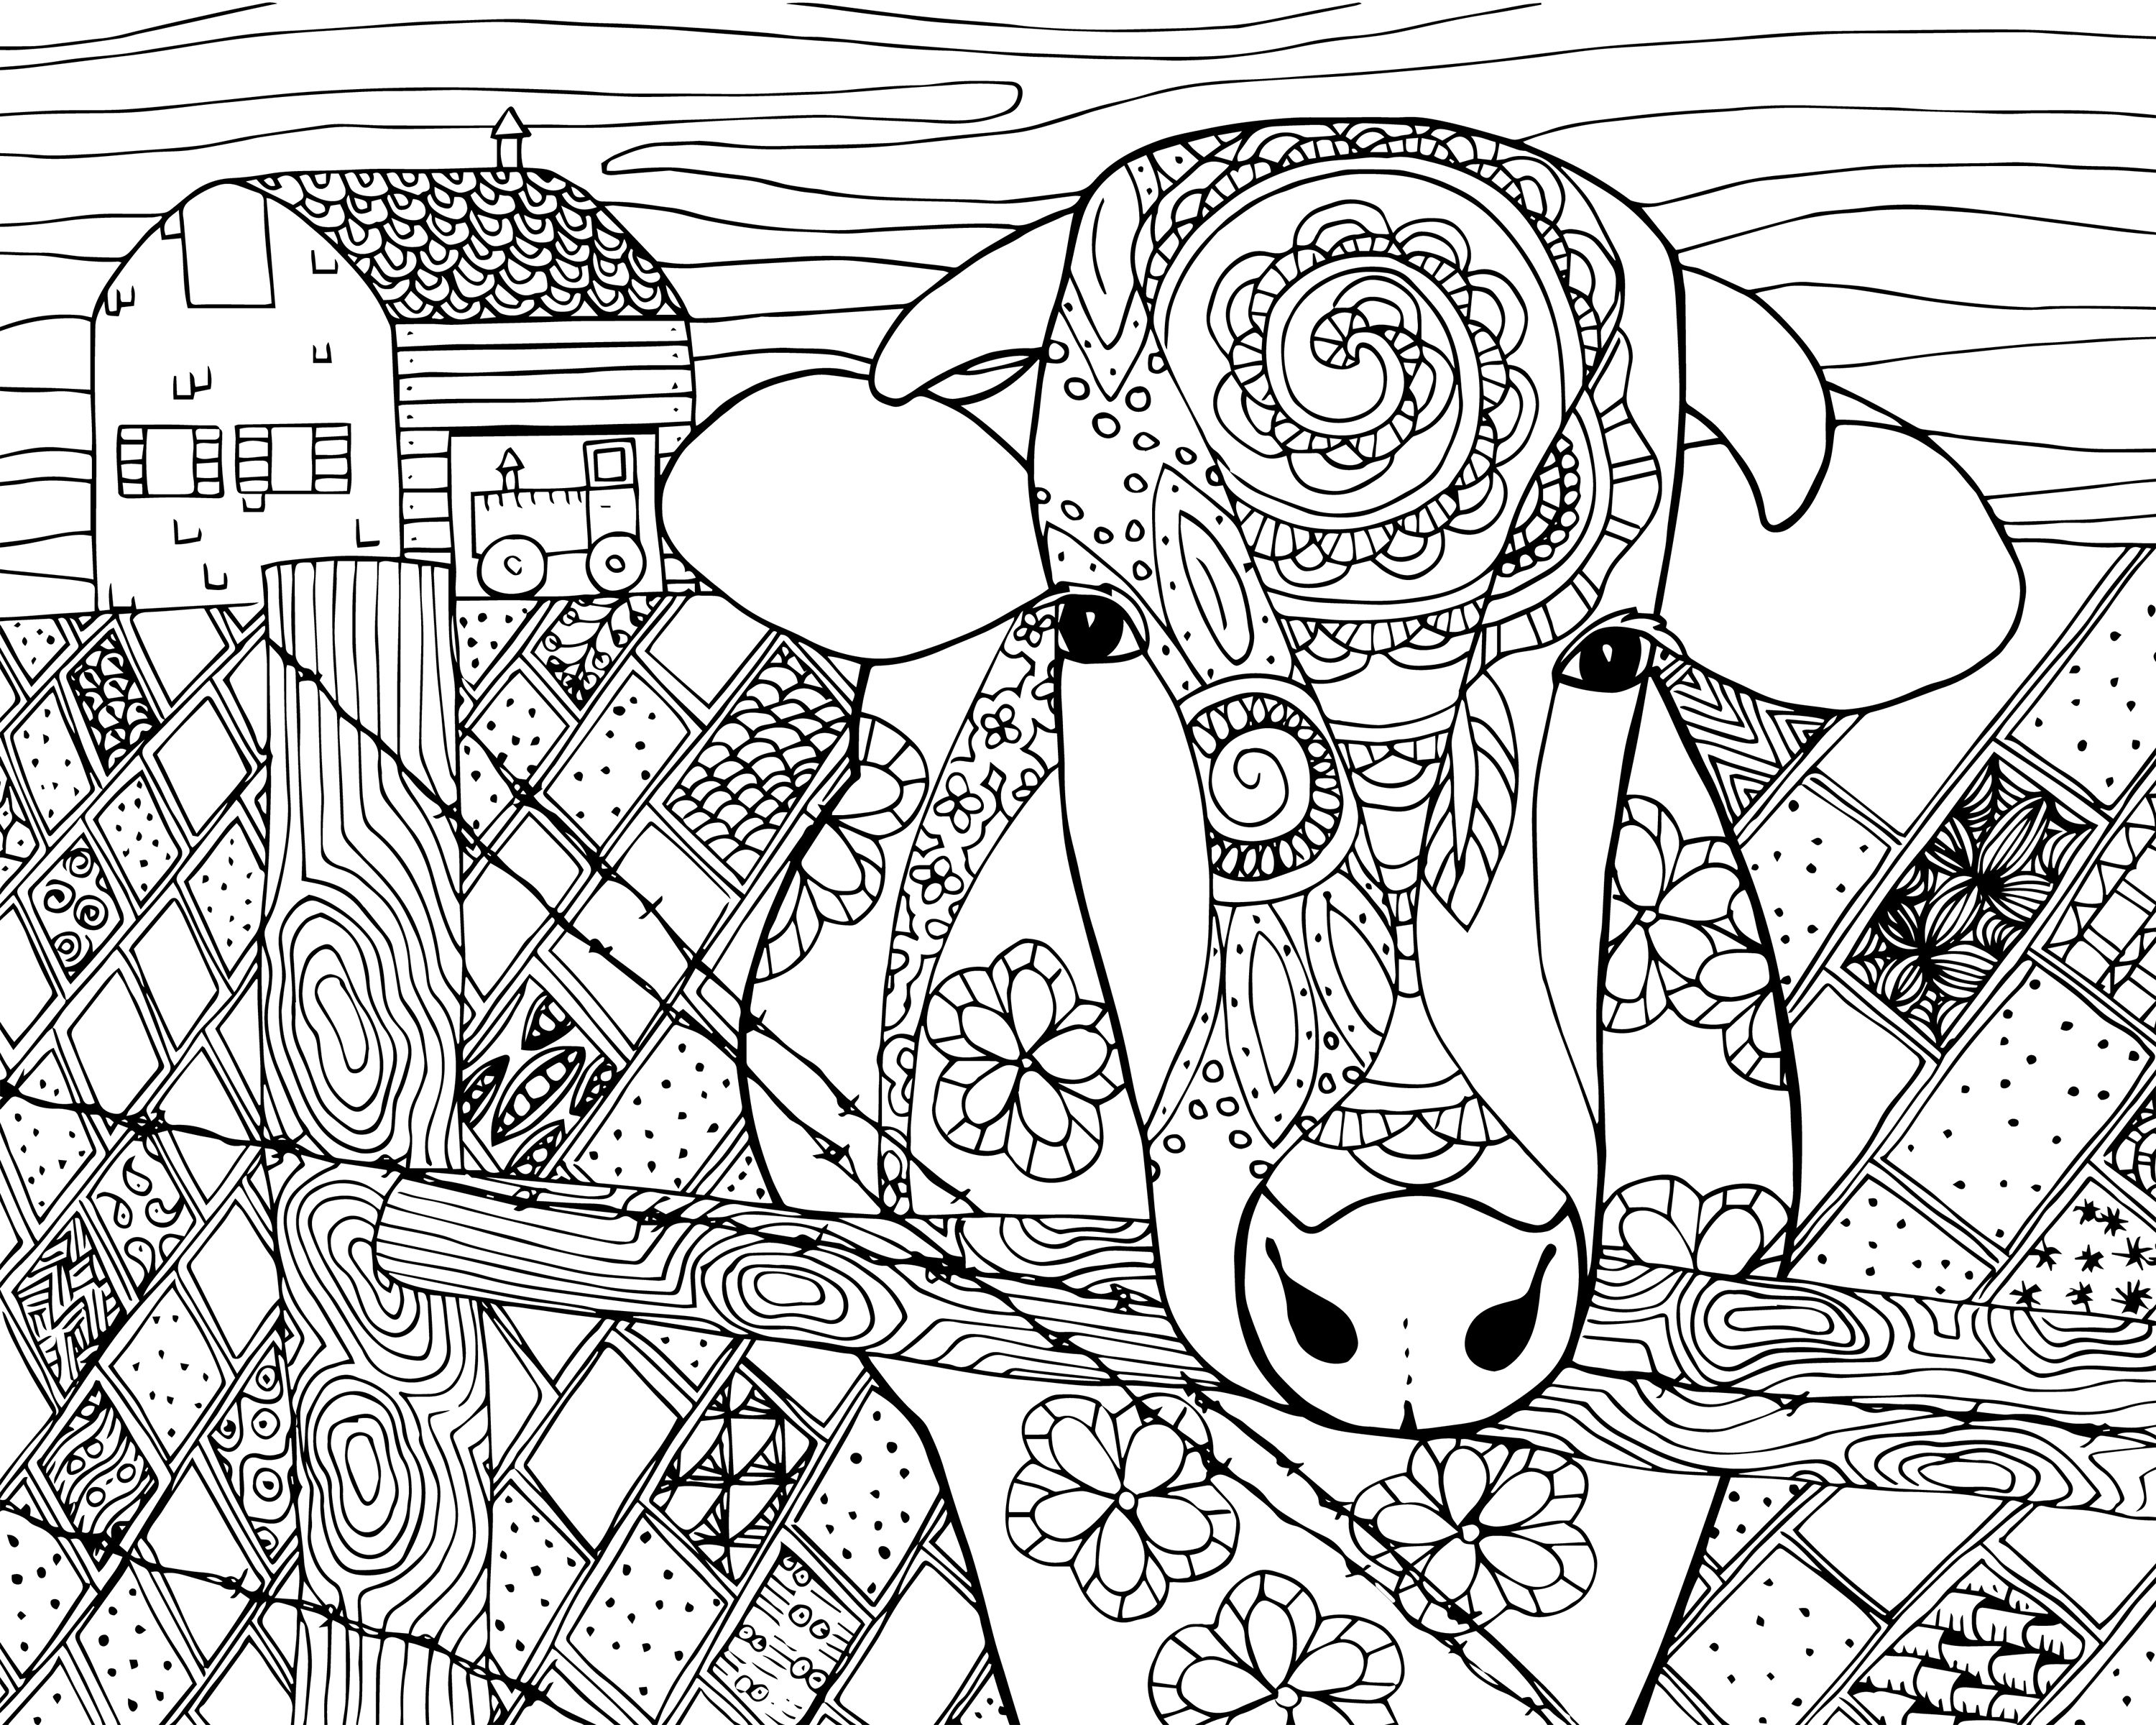 Cow Coloring Page For Grown Ups Cow Coloring Pages Farm Animal Coloring Pages Abstract Coloring Pages